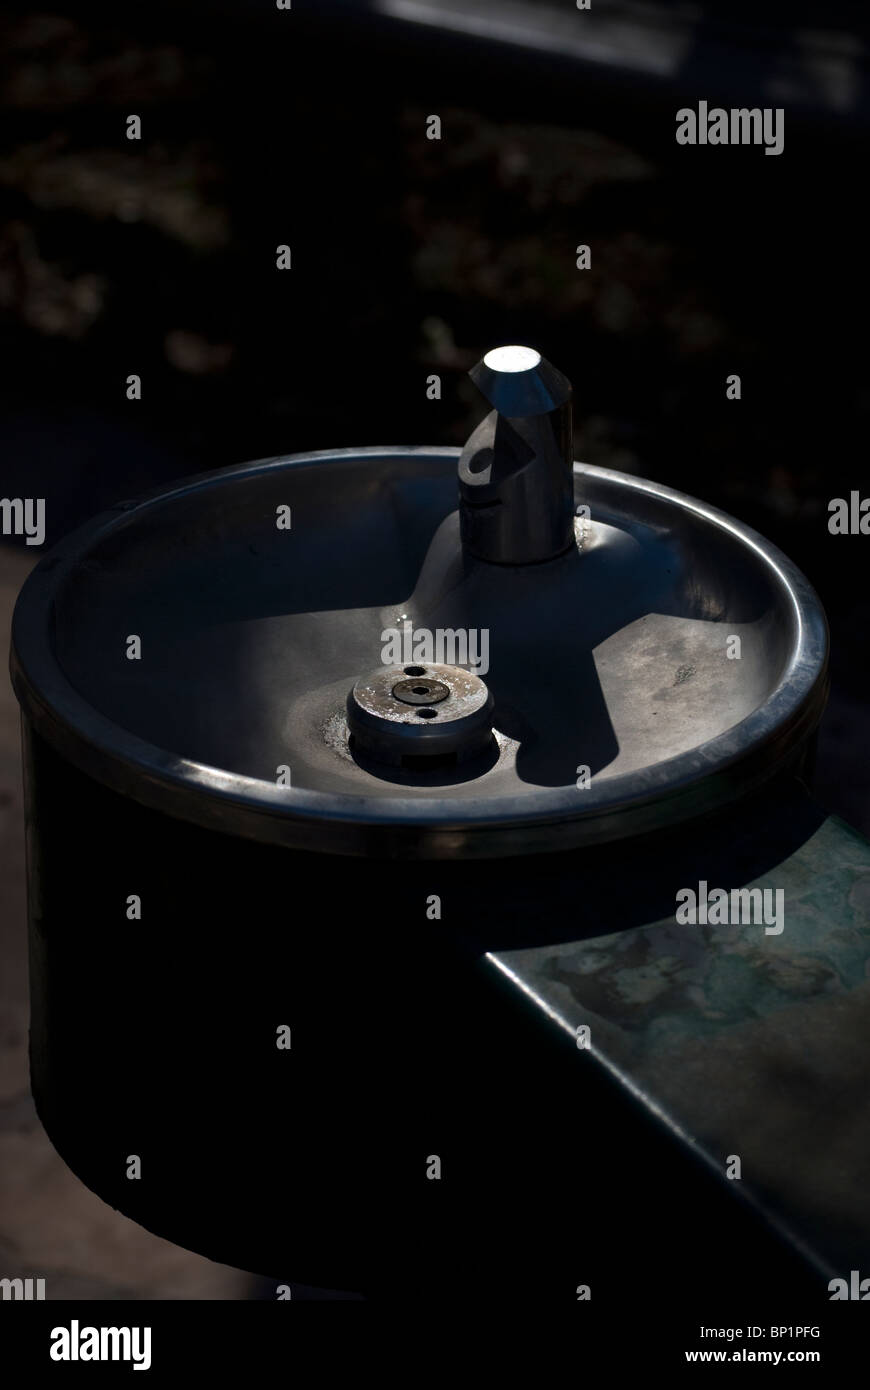 Drinking Fountain Spigot Stock Photos & Drinking Fountain Spigot ...